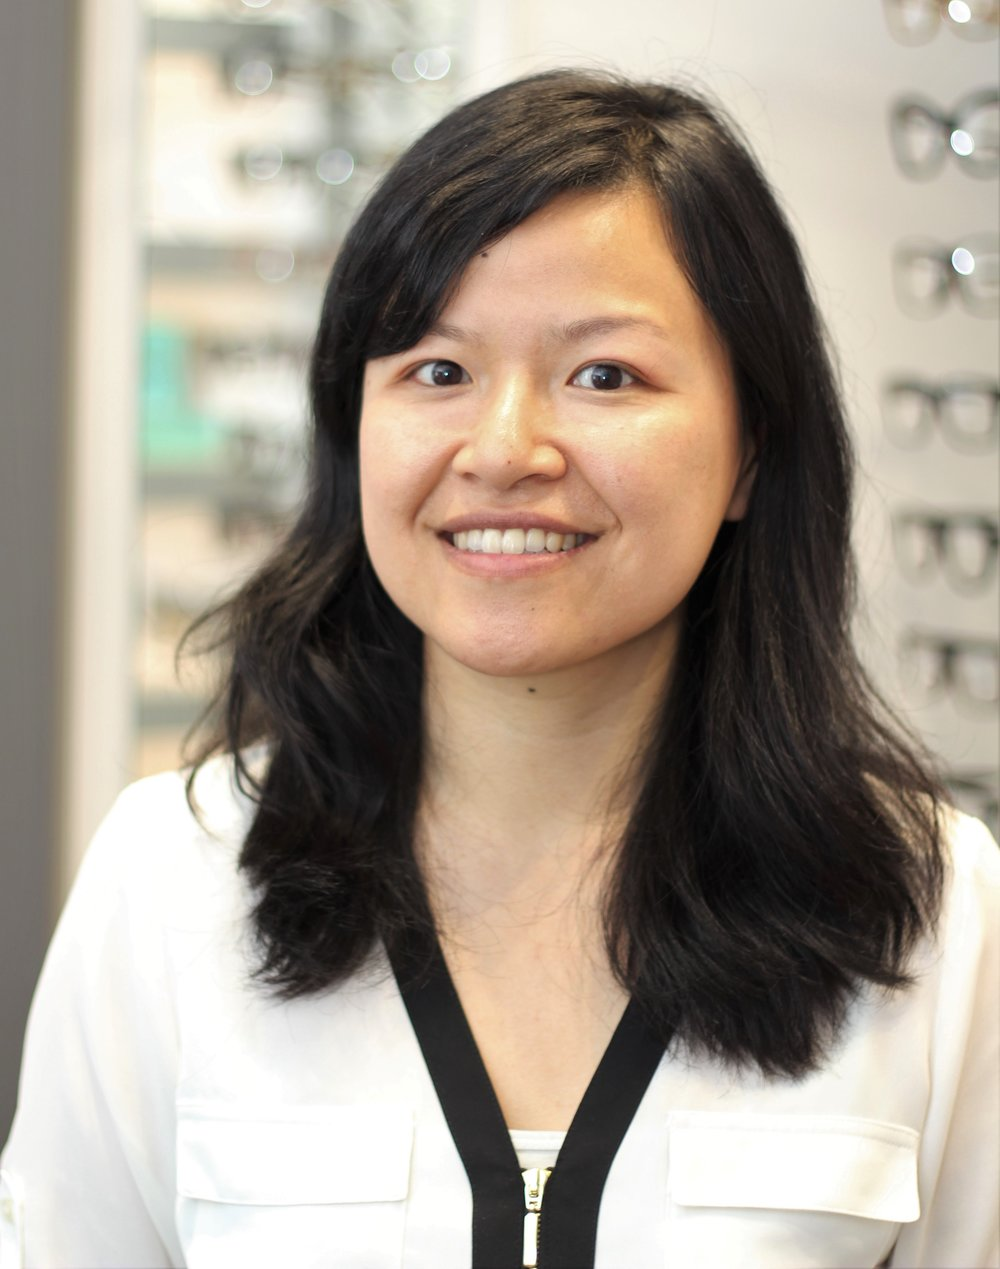 - We are so delighted that Dr. Peggy Zeng, a San Francisco native, has joined us as our new board-certified optometrist. She has over 5 years of clinical experience in the Bay Area practicing general optometry alongside ophthalmologists.She is available for routine eye exams as well as any eye emergencies. She is available to see patients at our downtown Union Square office on Thursdays and Fridays, and at our Stonestown office on Wednesdays.